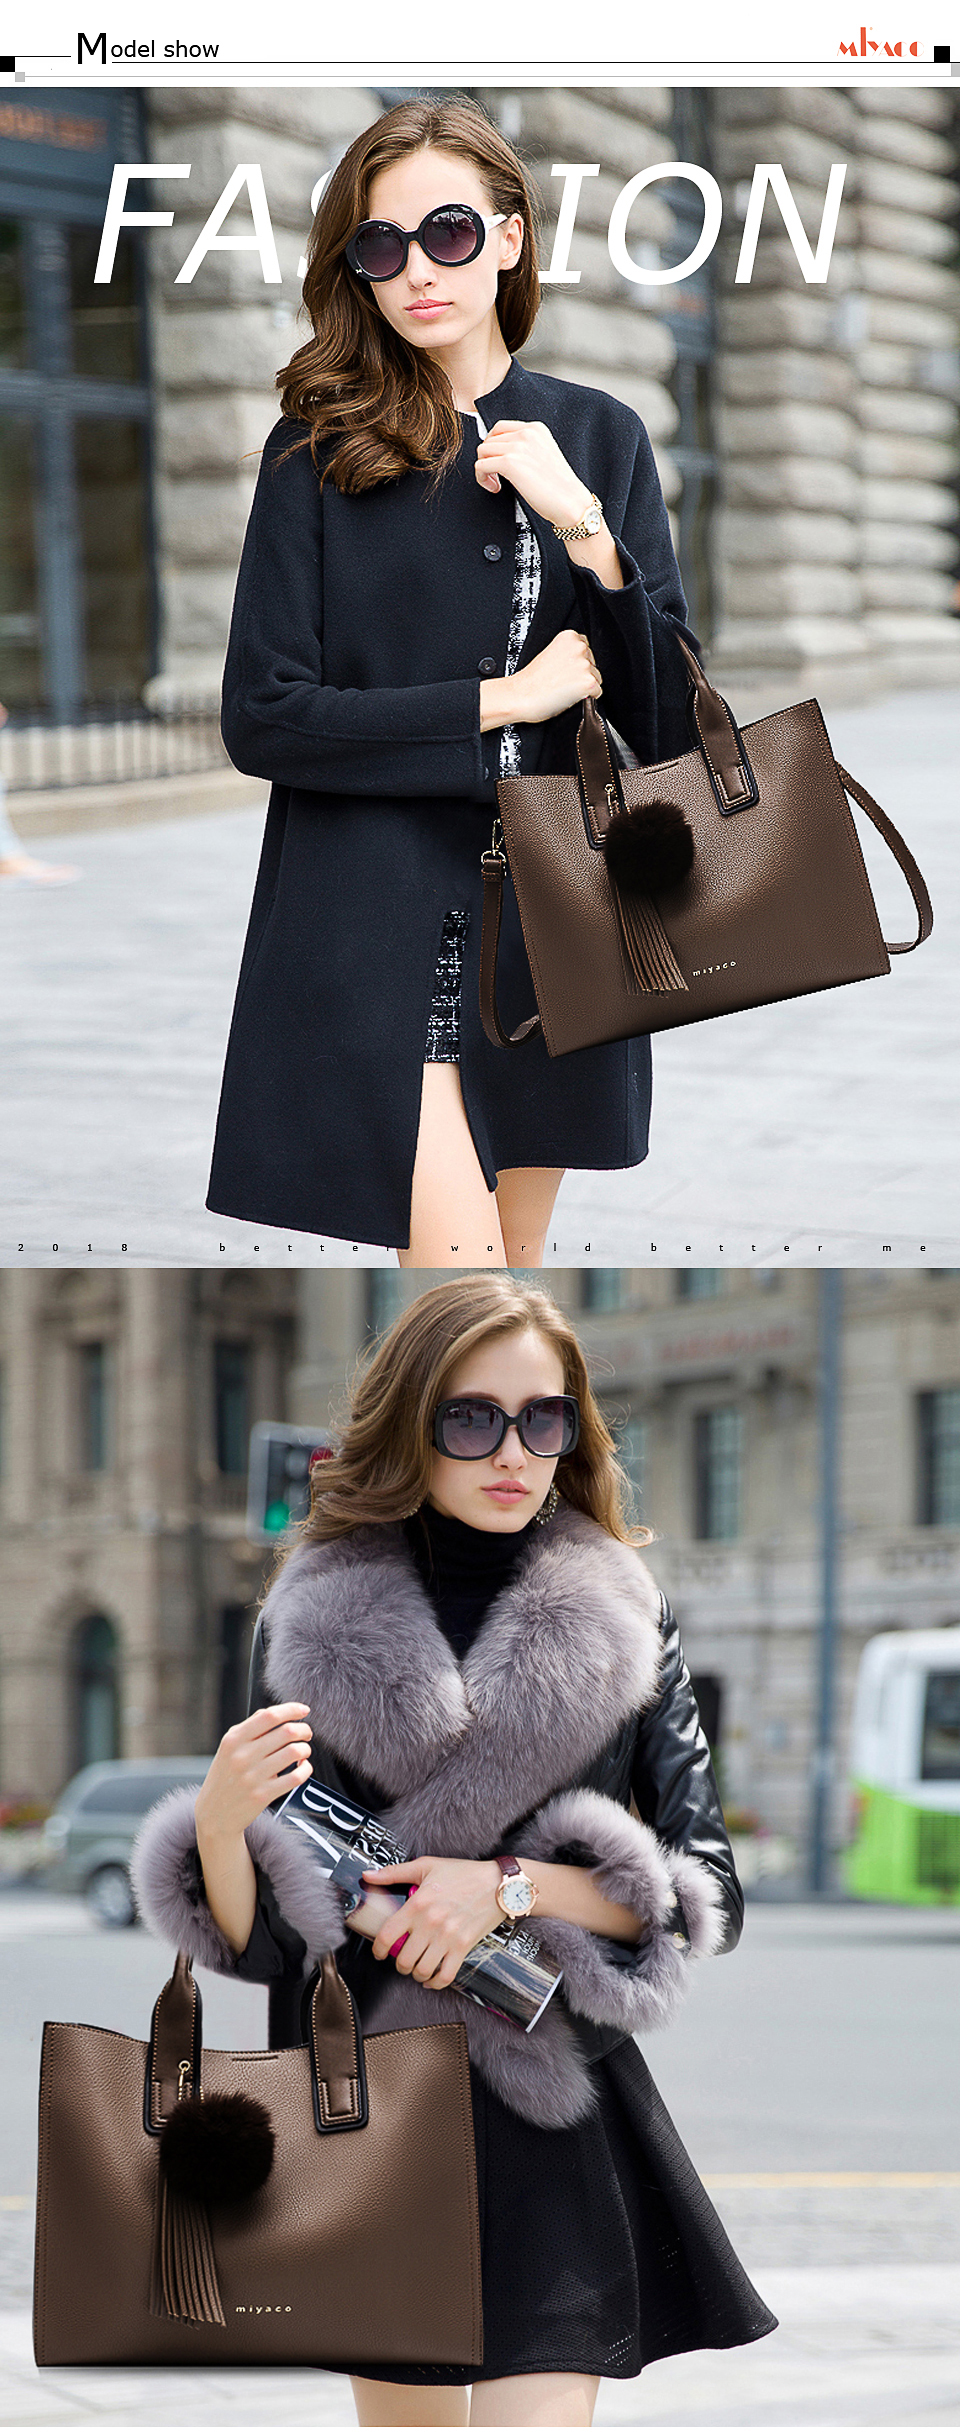 Miyaco Women Leather Handbags Casual Brown Tote bags Crossbody Bag TOP-handle bag With Tassel and fluffy ball 14